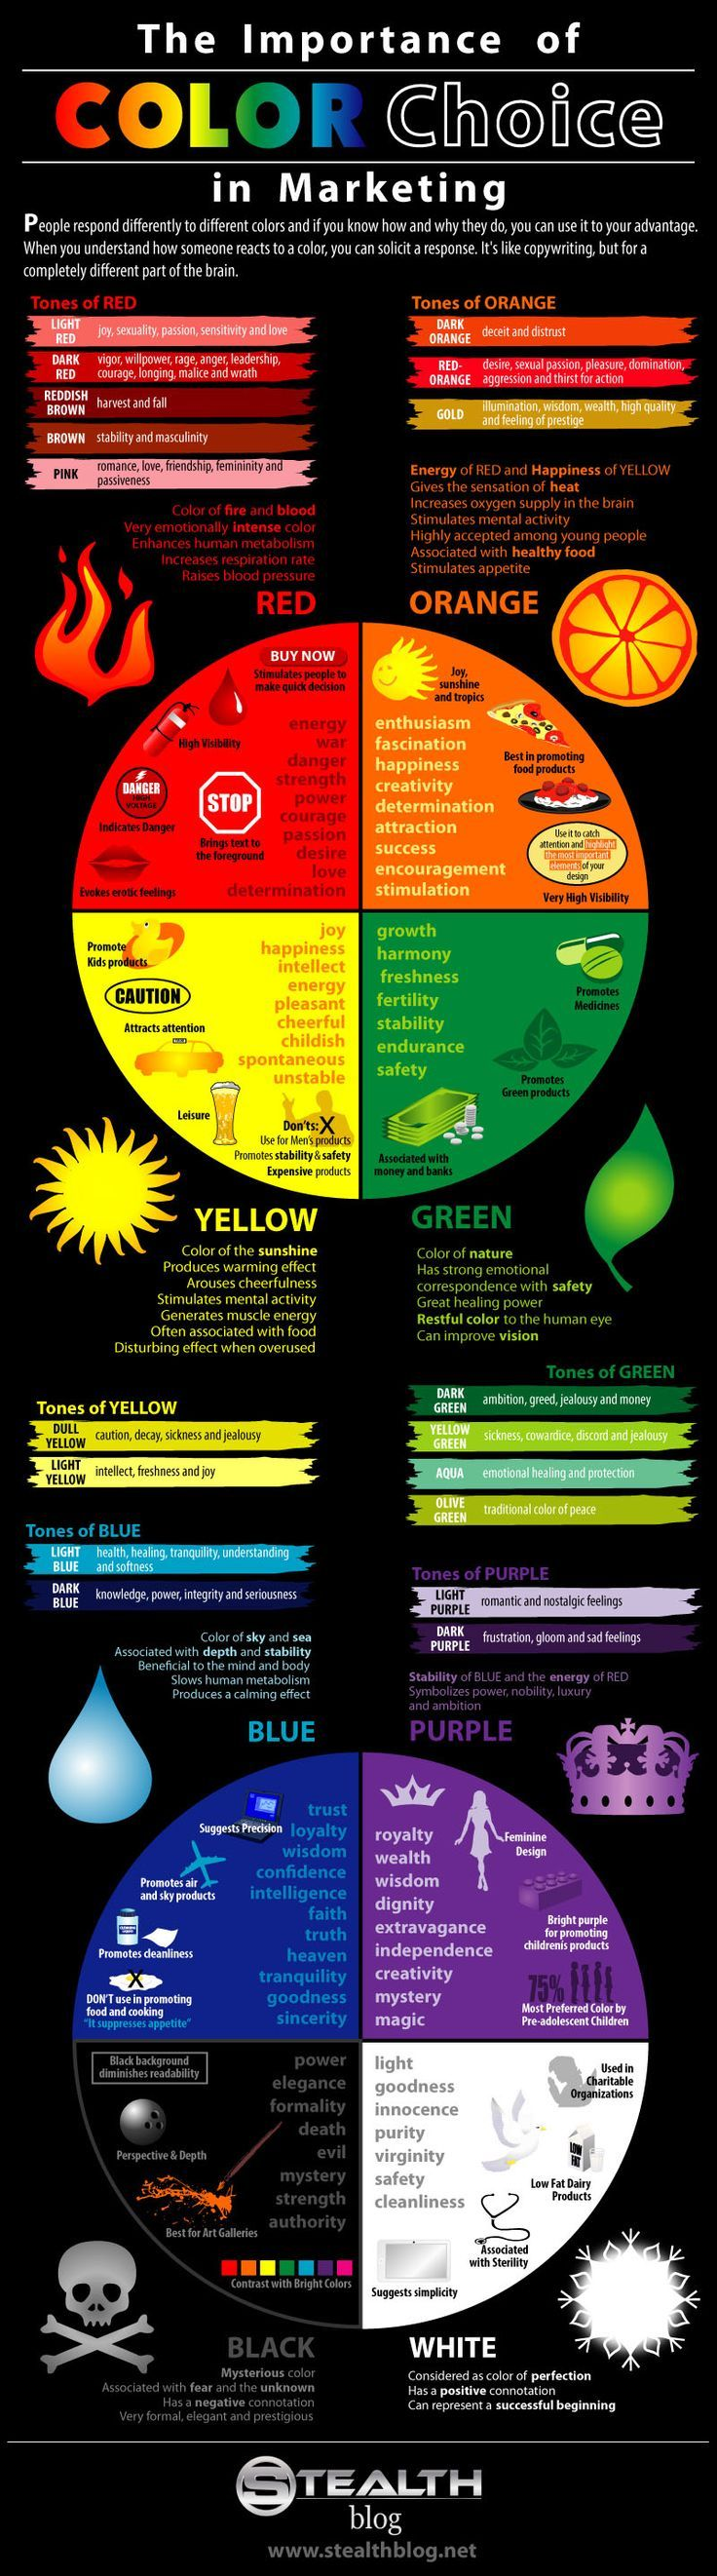 Infographic - The Importance of Color Choice in Marketing | Stealth Blog visit http://nel.ms